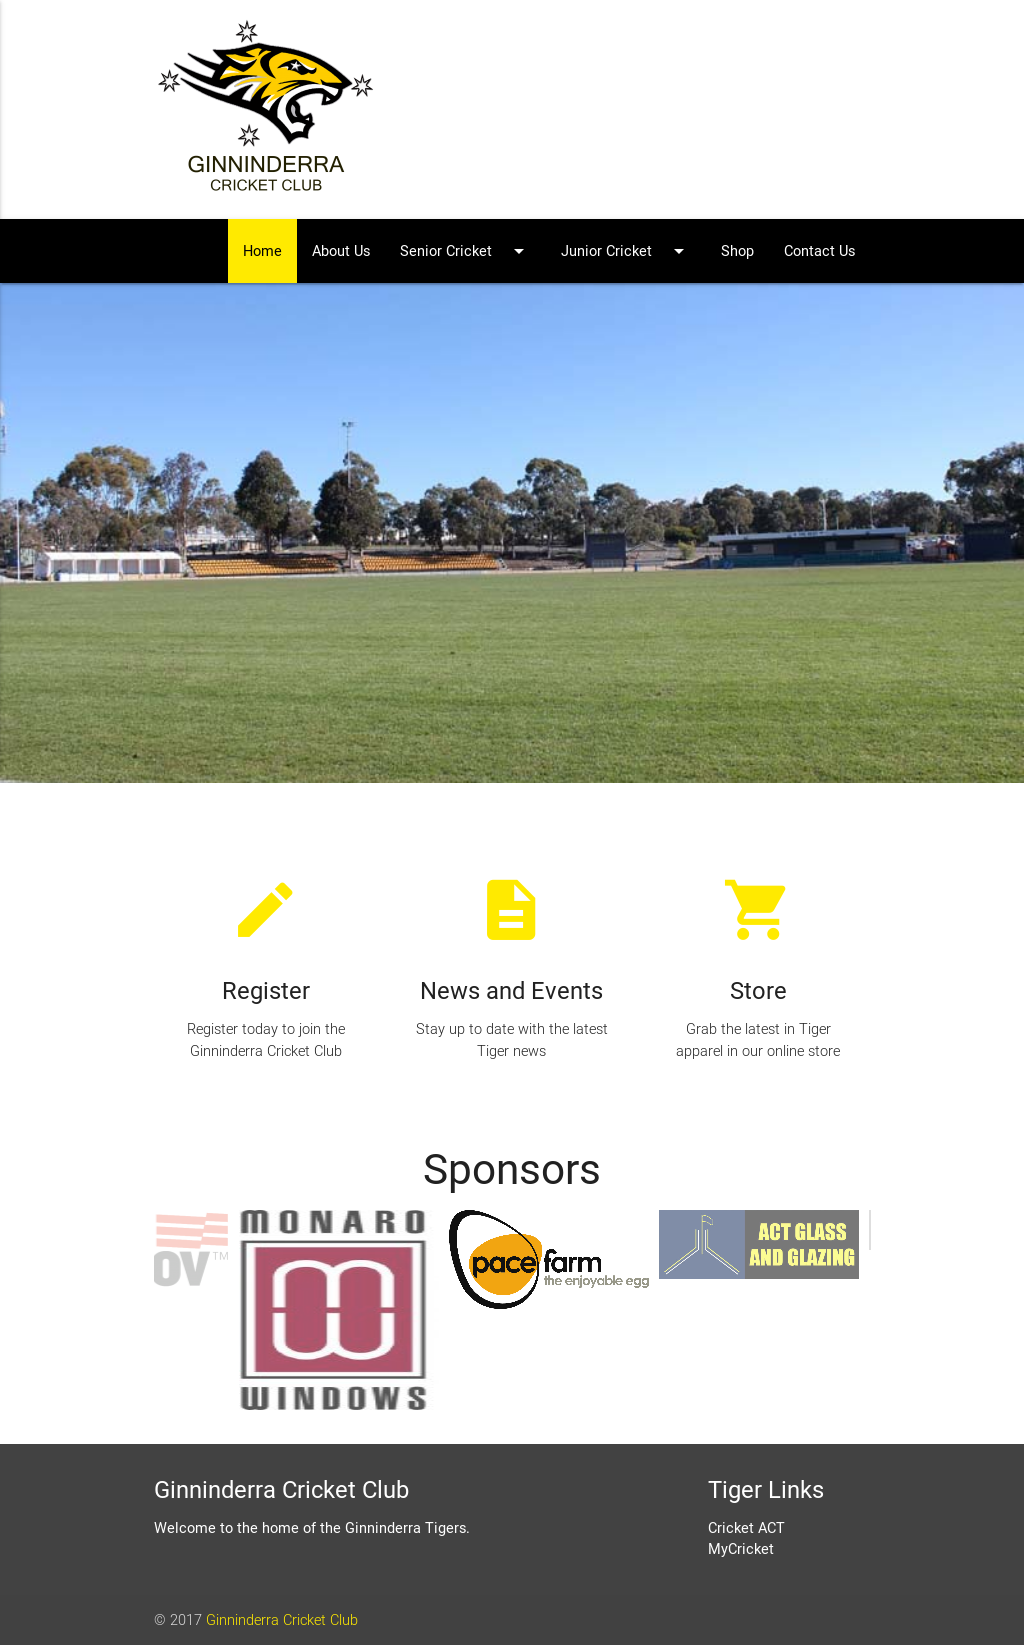 Ginninderra Cricket Club Competitors, Revenue and Employees